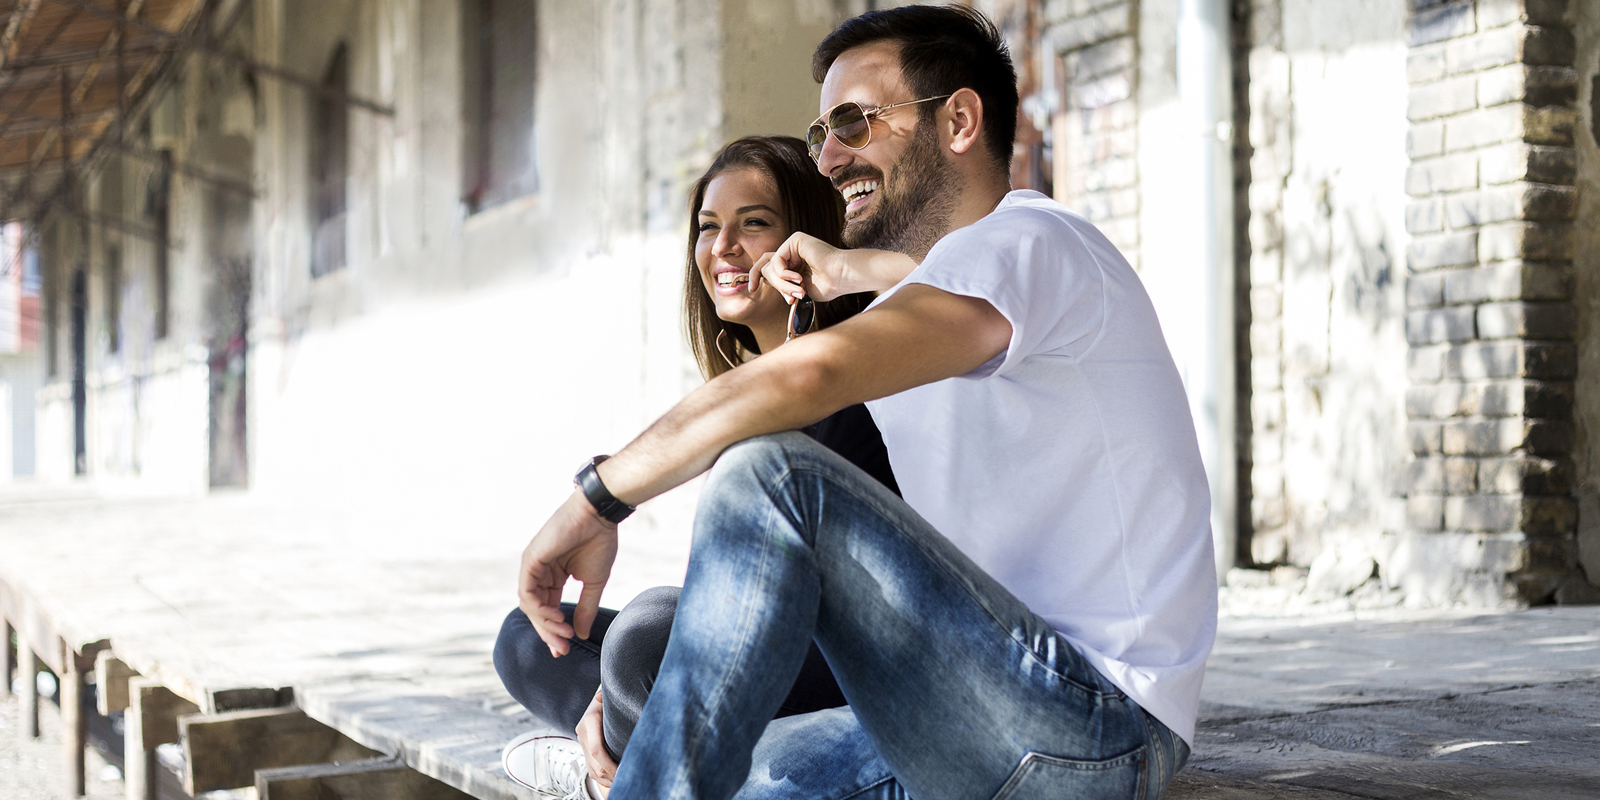 Casual happy couple dating and sitting outdoor